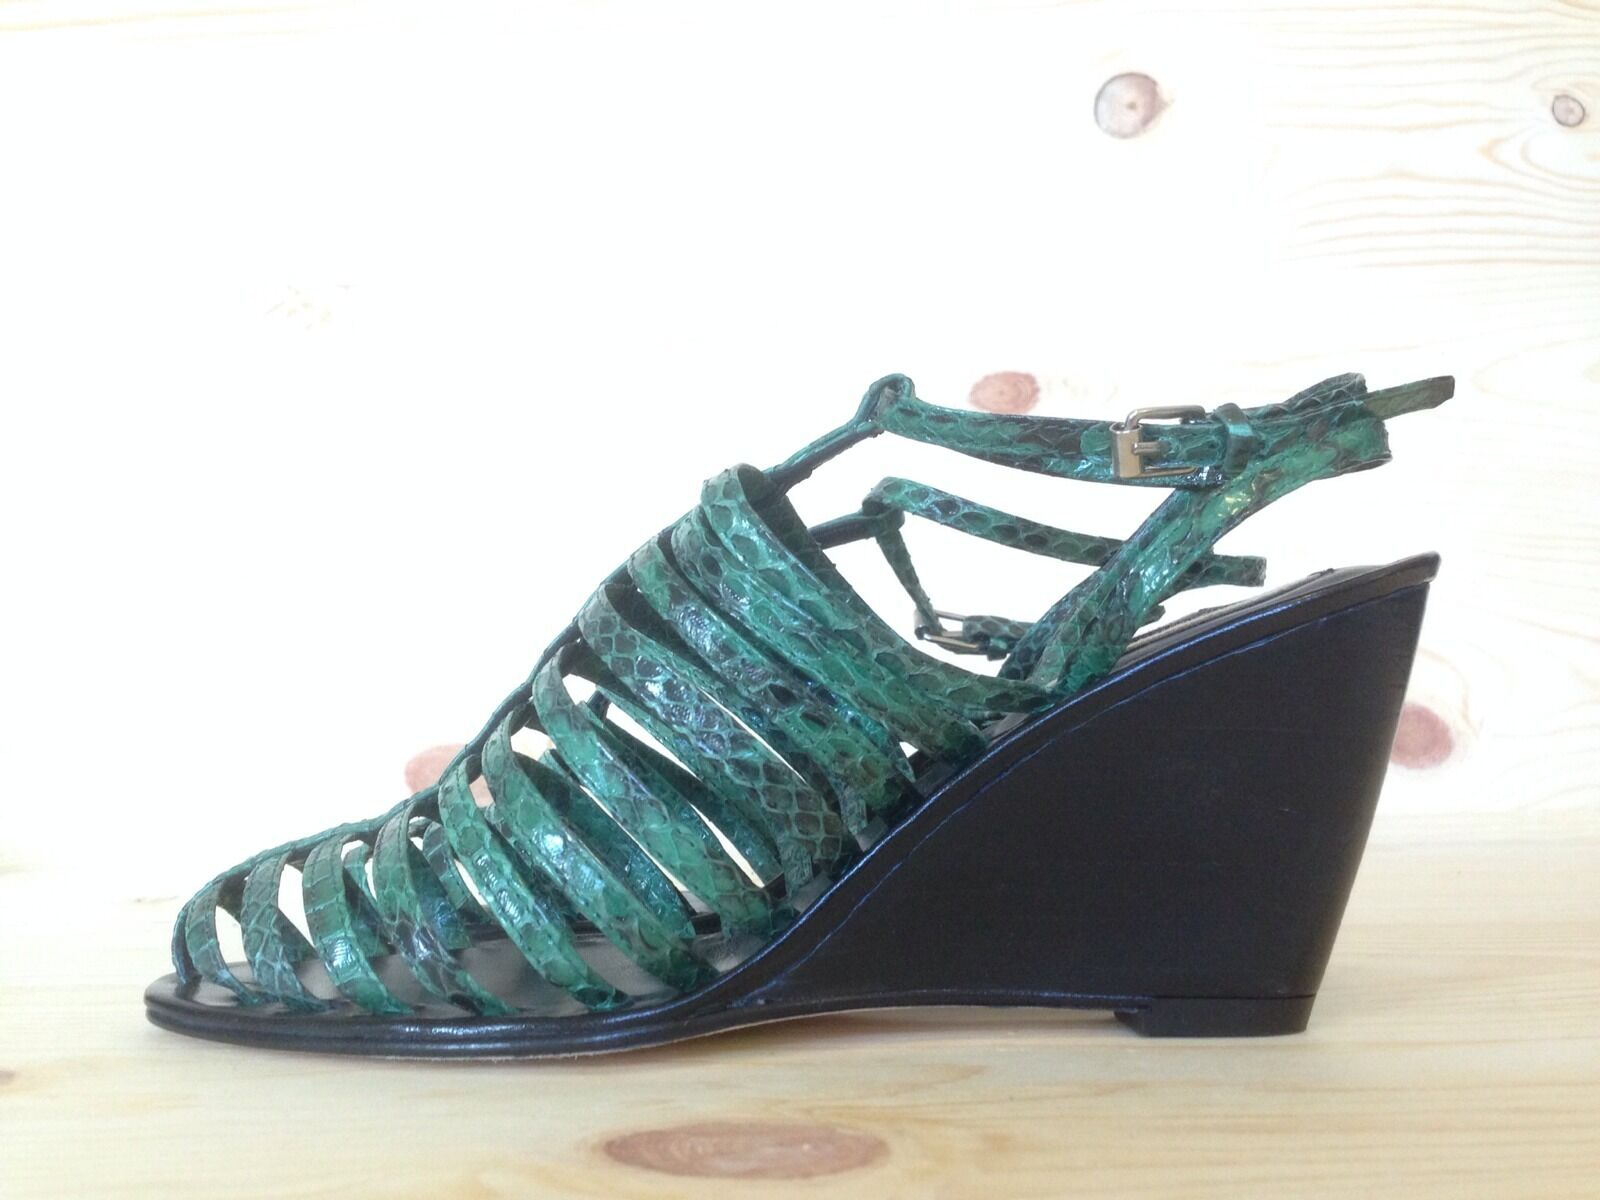 OPENING CEREMONY BURNING MAN AYERS MSRP GREEN PLATFORM WEDGE SANDALS MSRP AYERS 540 SIZE 36 1fa239